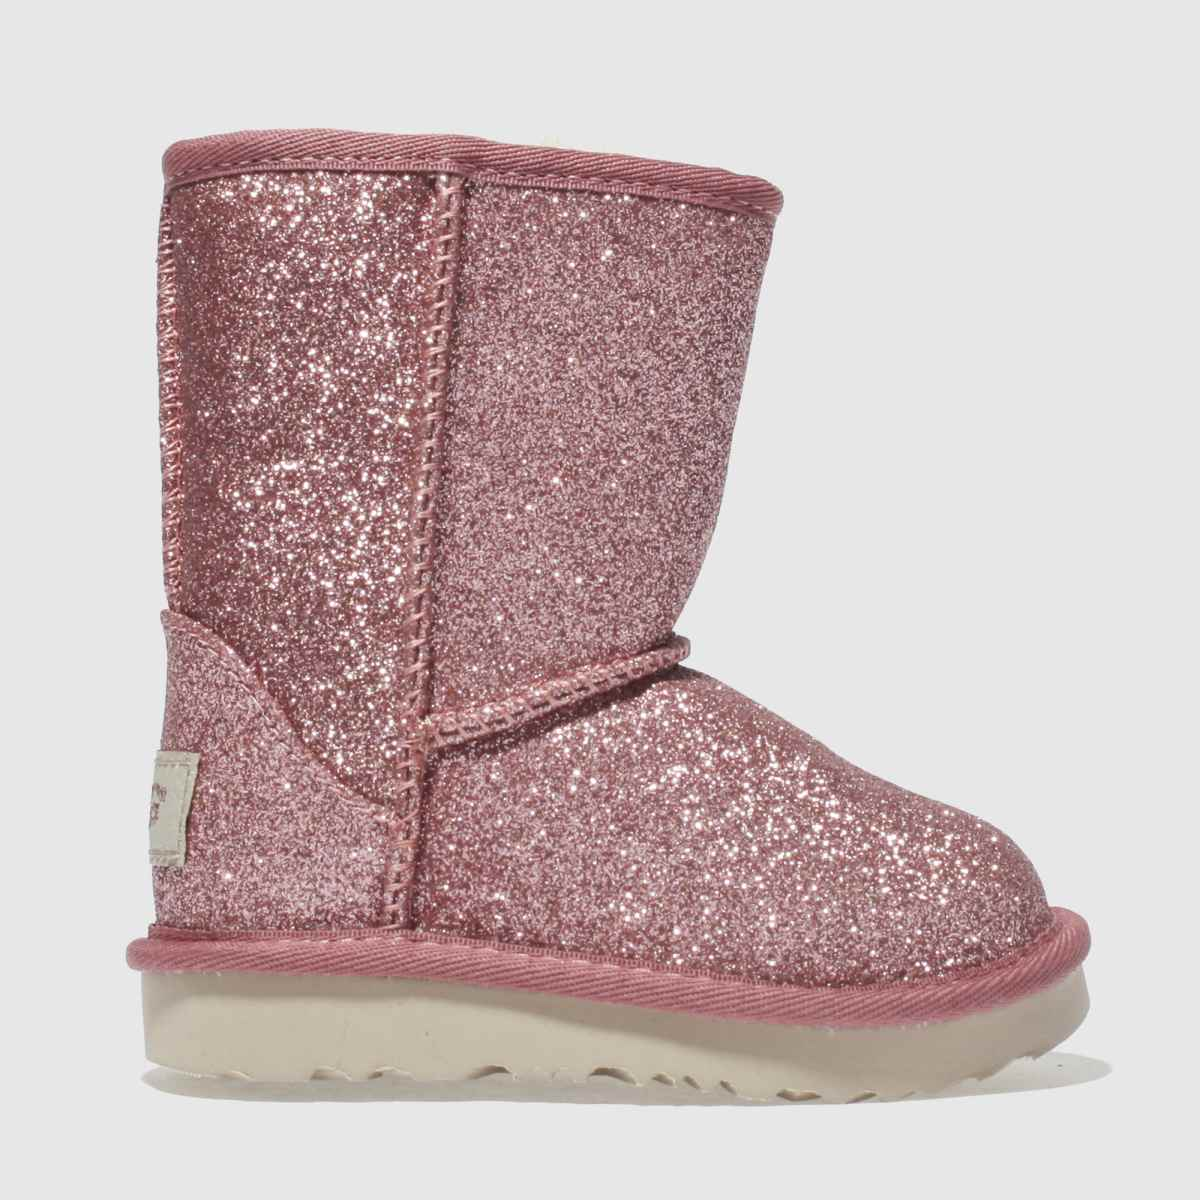 Ugg Pink Classic Short Ii Glitter Boots Toddler